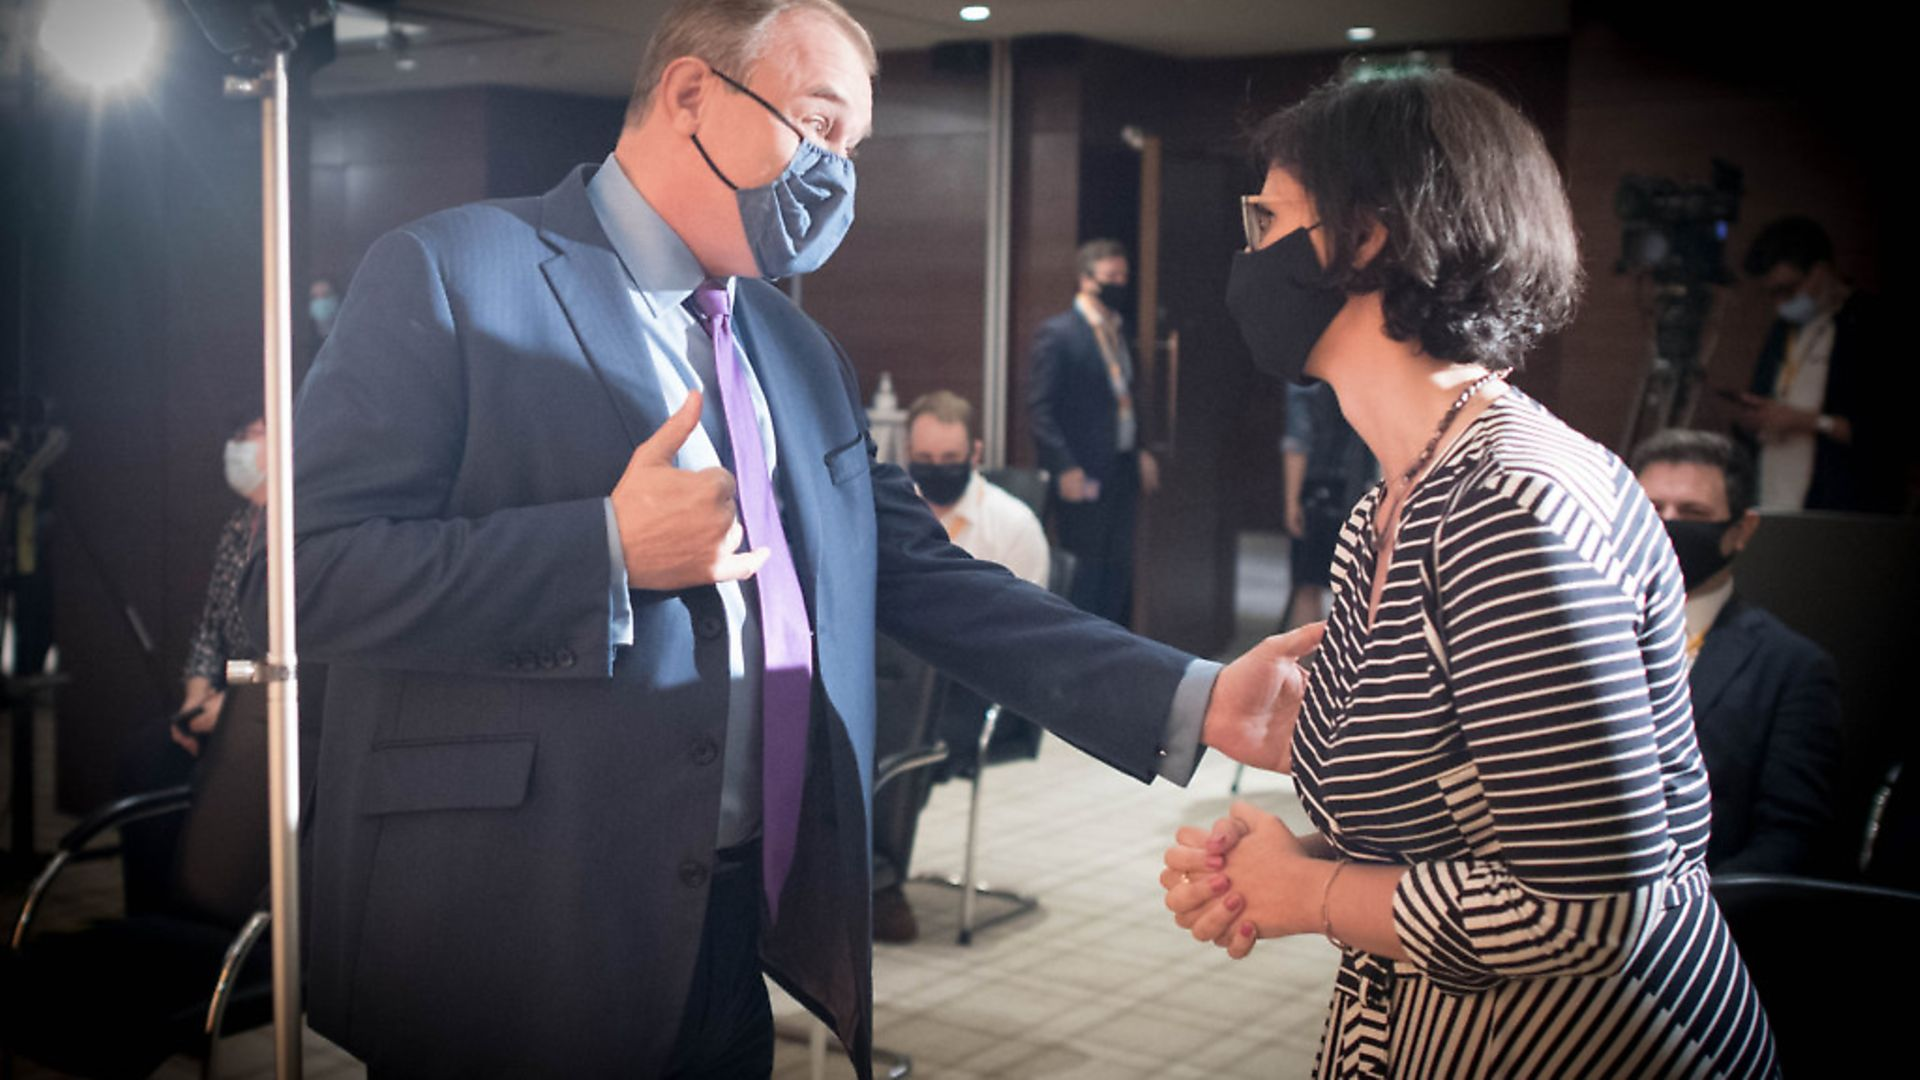 Sir Ed Davey at the Conrad Hotel, Westminster, with Layla Moran. Photograph: Stefan Rousseau/PA Wire. - Credit: PA